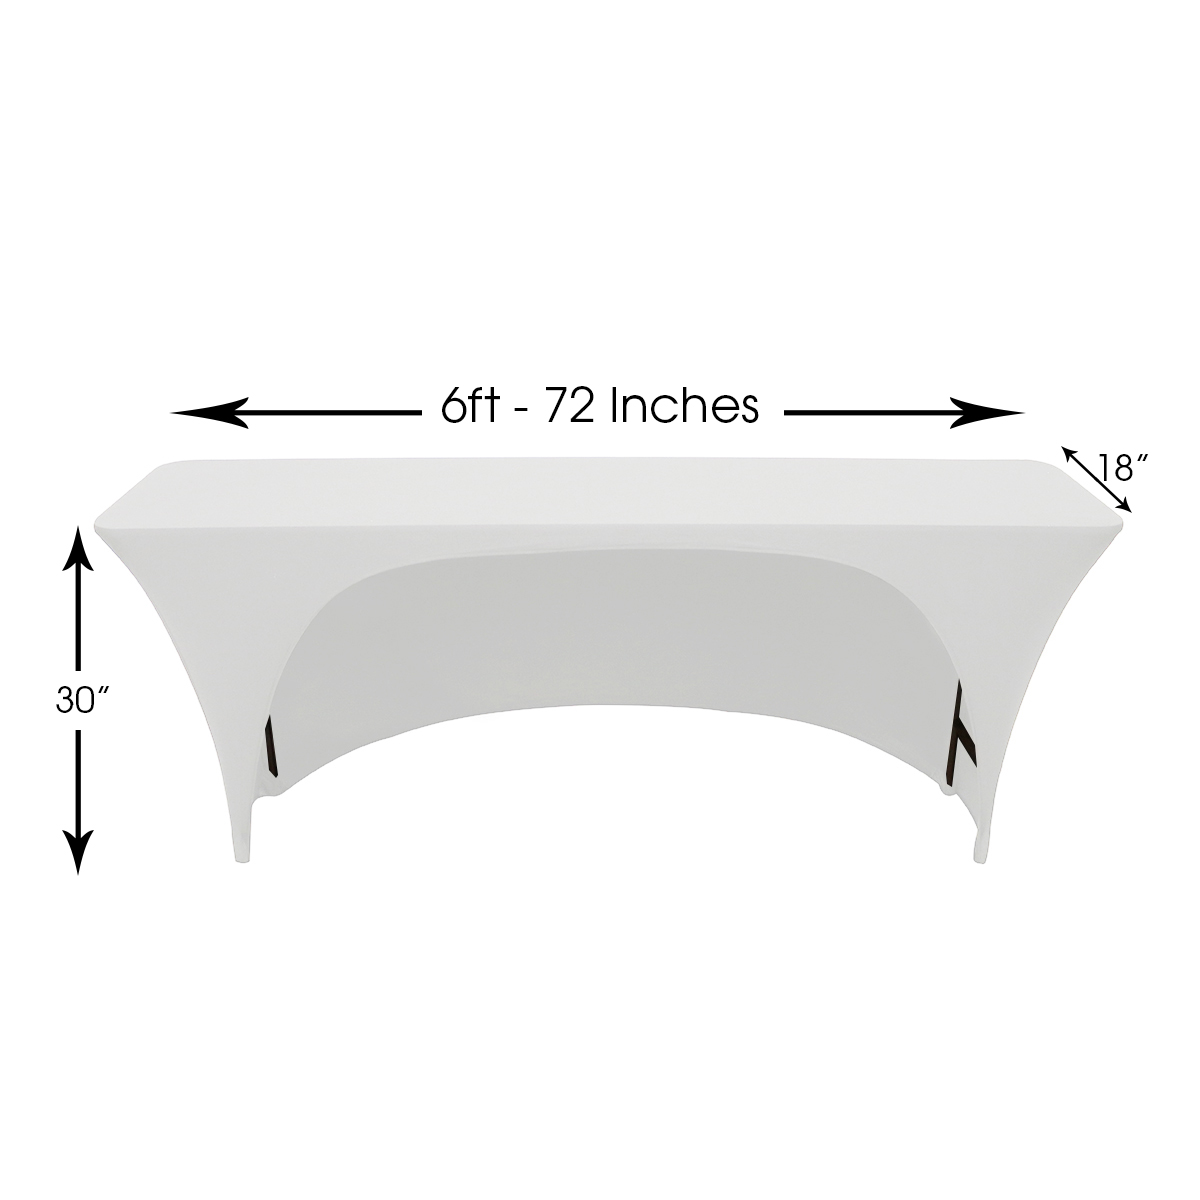 stretch-spandex-6ft-18-inches-open-back-rectangular-table-covers-white-dimensions.jpg